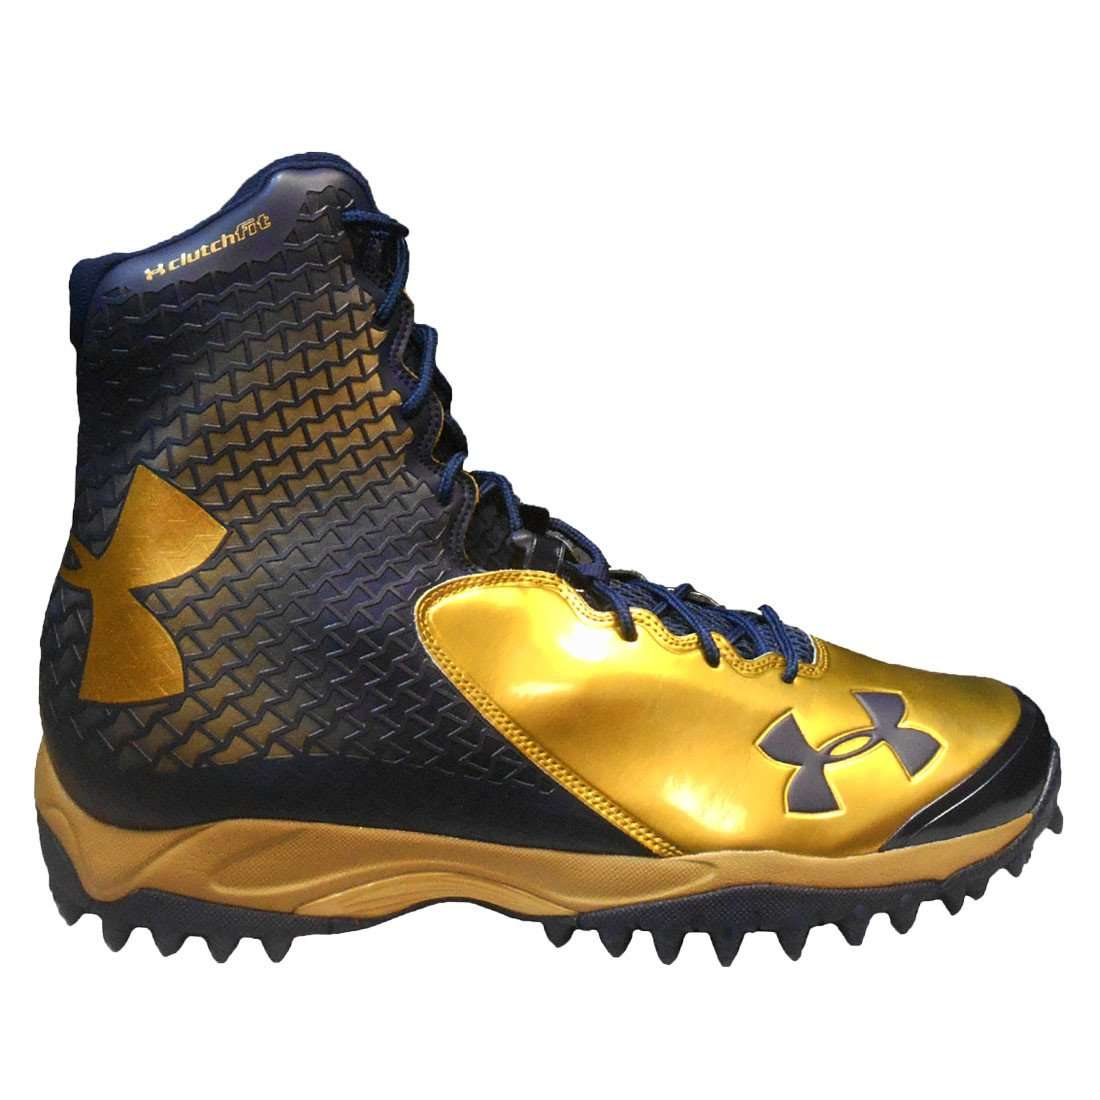 a2074e3db36 Cheap under armour brawler cleat size 13 Buy Online  OFF65% Discounted